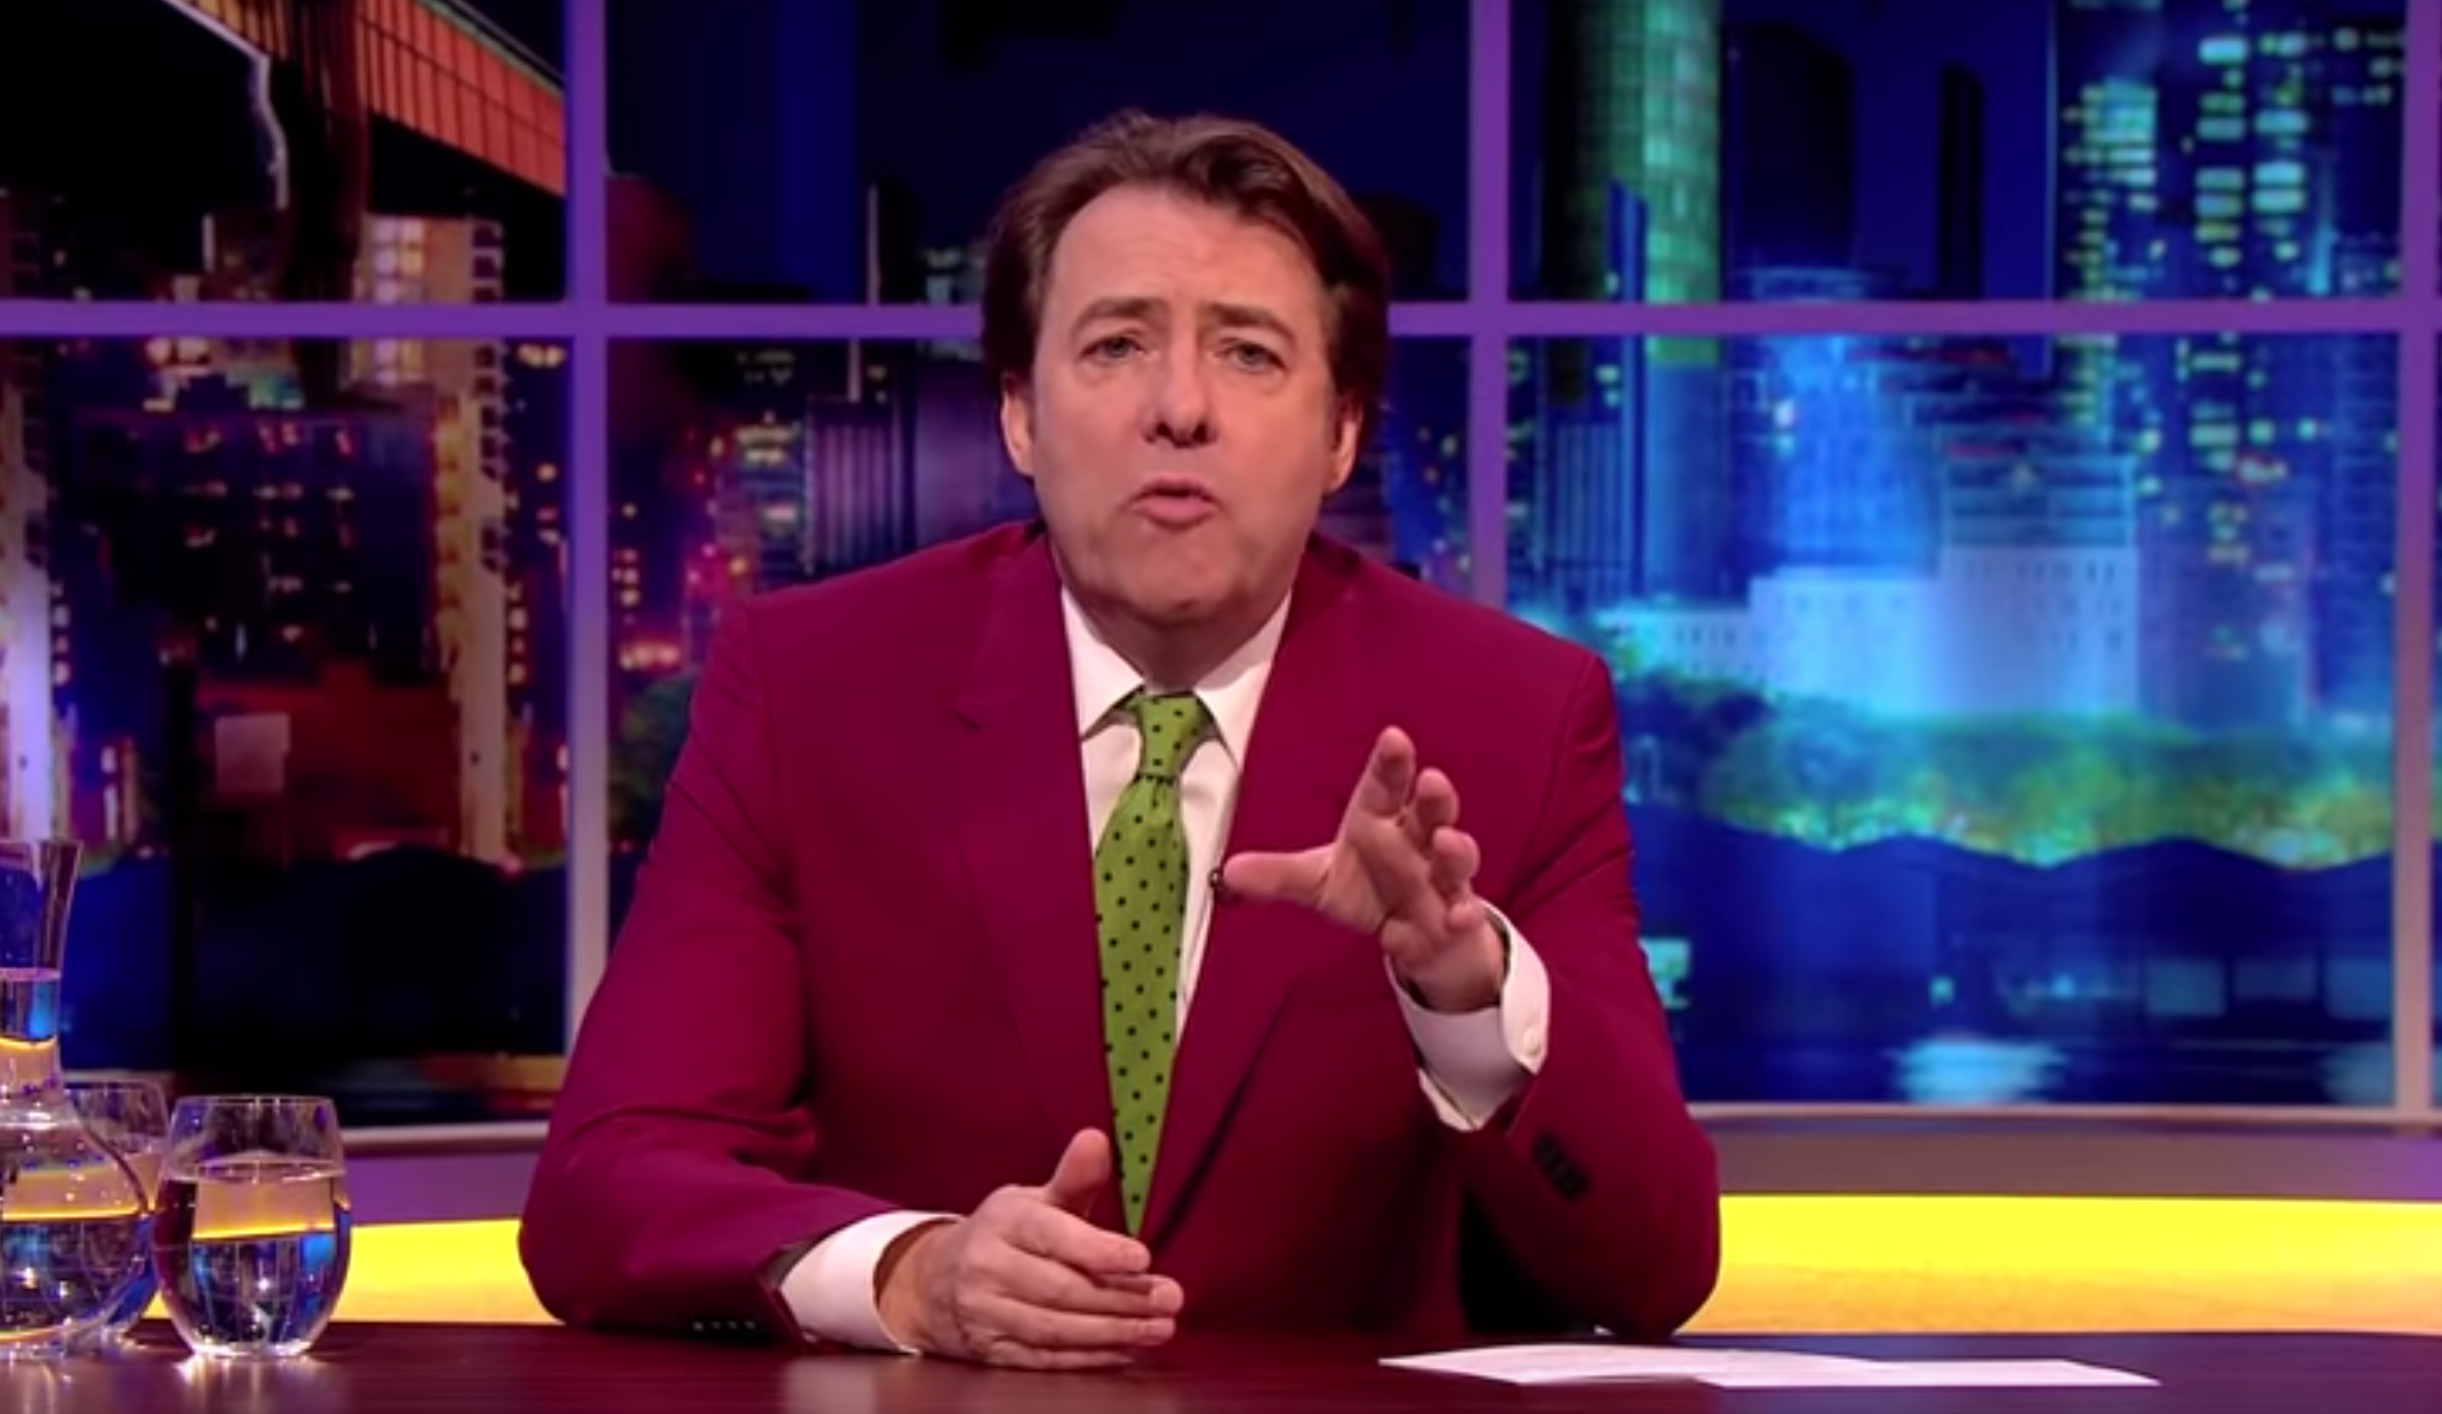 ITV denies Jonathan Ross' chat show has been 'shelved due to disappointing ratings'